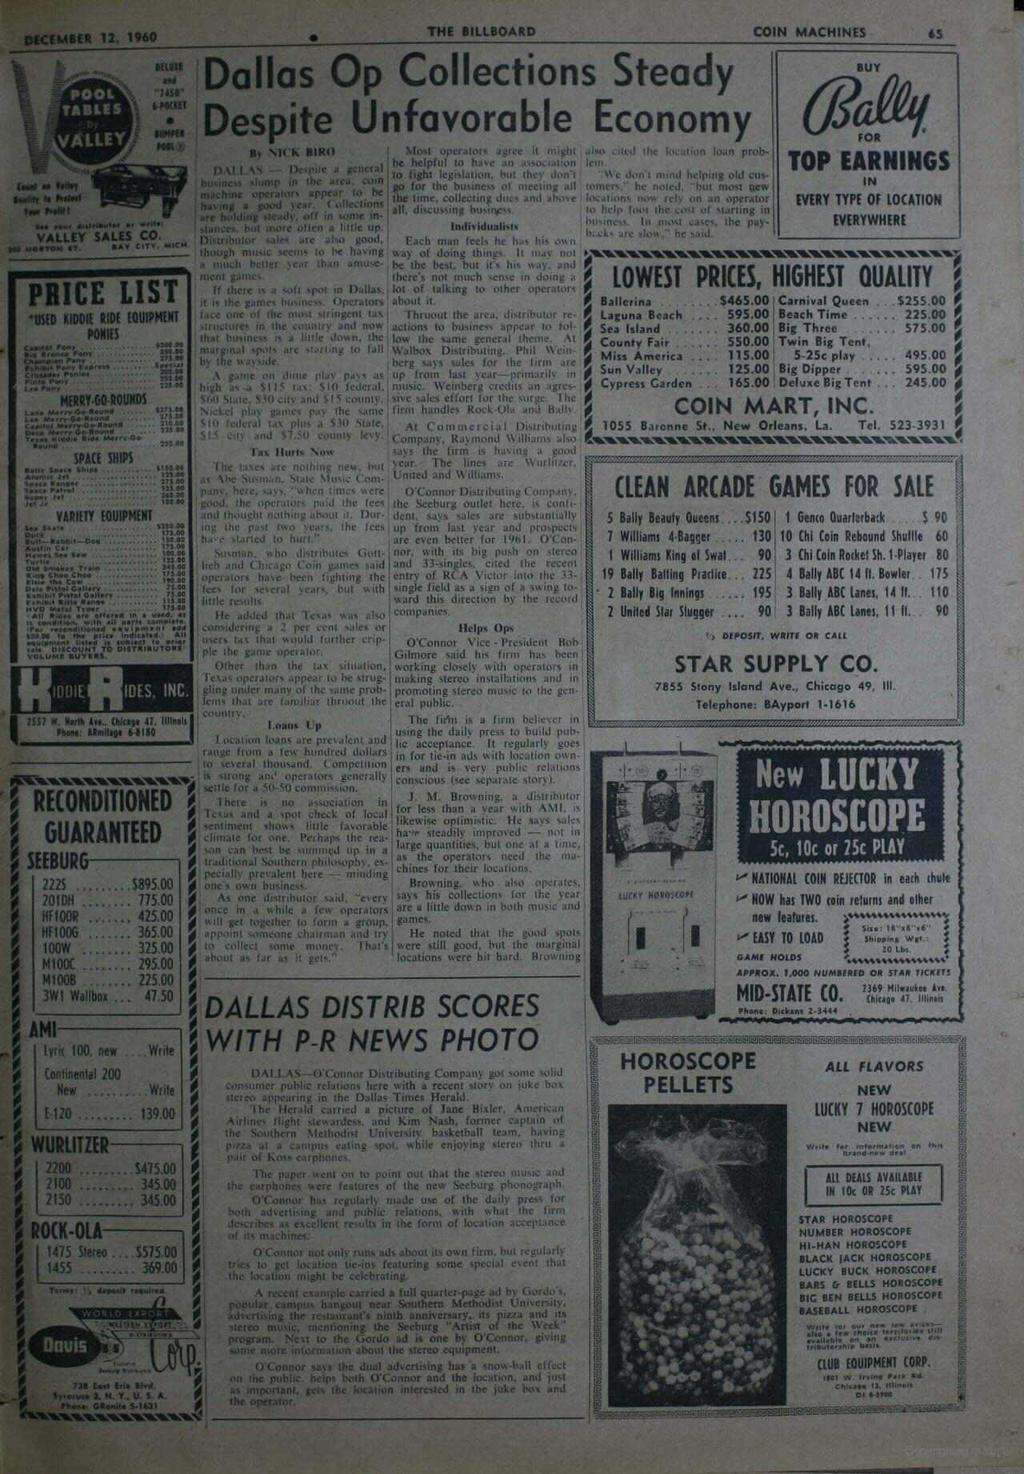 Perhaps www.americanradiohistory.com '. DECEMBER 12, 1960 THE BILLBOARD COIN MACHINES 65 faul ea Volley s_ M hdm Tue anion POOL TABLES VALLEY HUH.a/ MO'! POOH IOW! 100t VALLEY SALES CO. N.